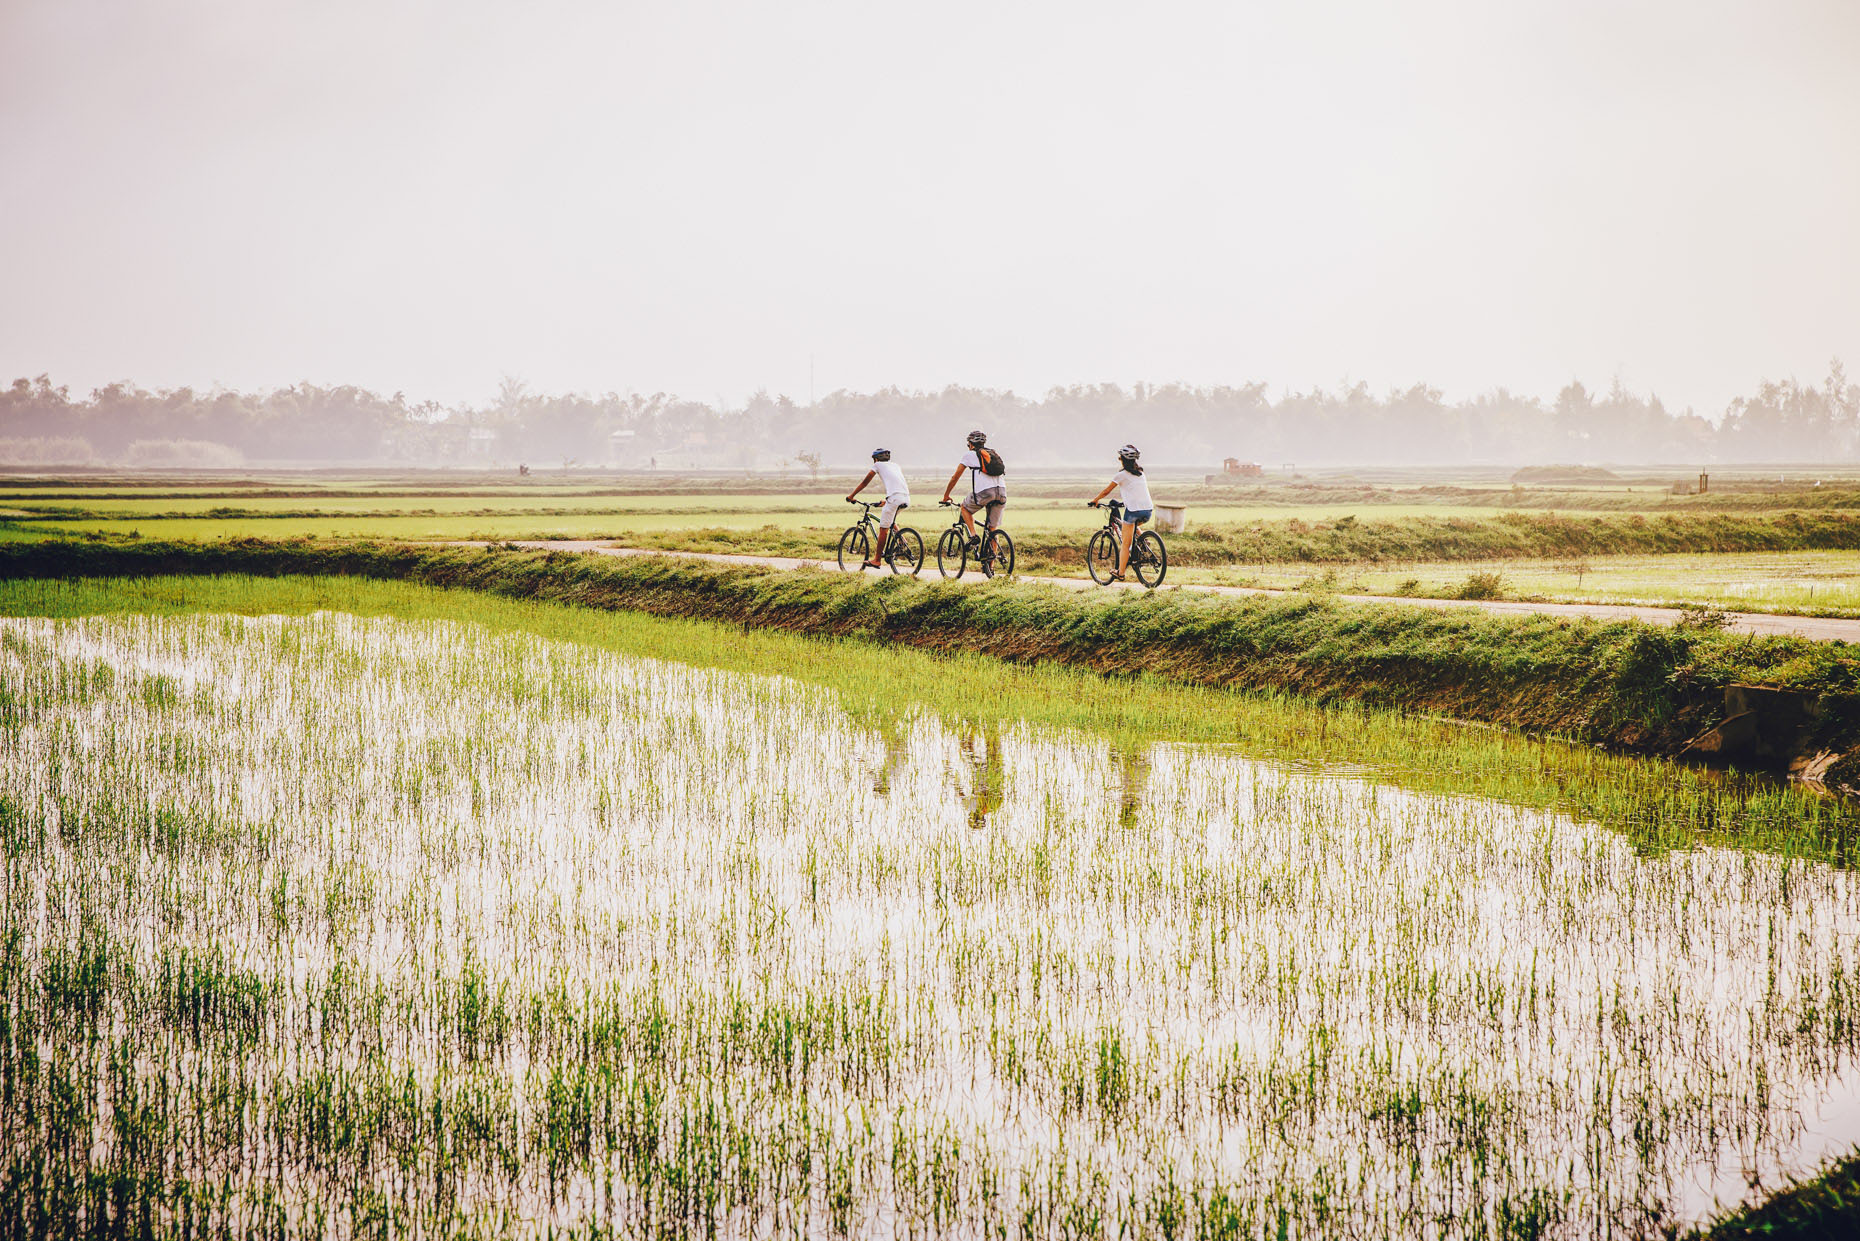 Inti St Clair photo of people bicycling through rice fields in Vietnam